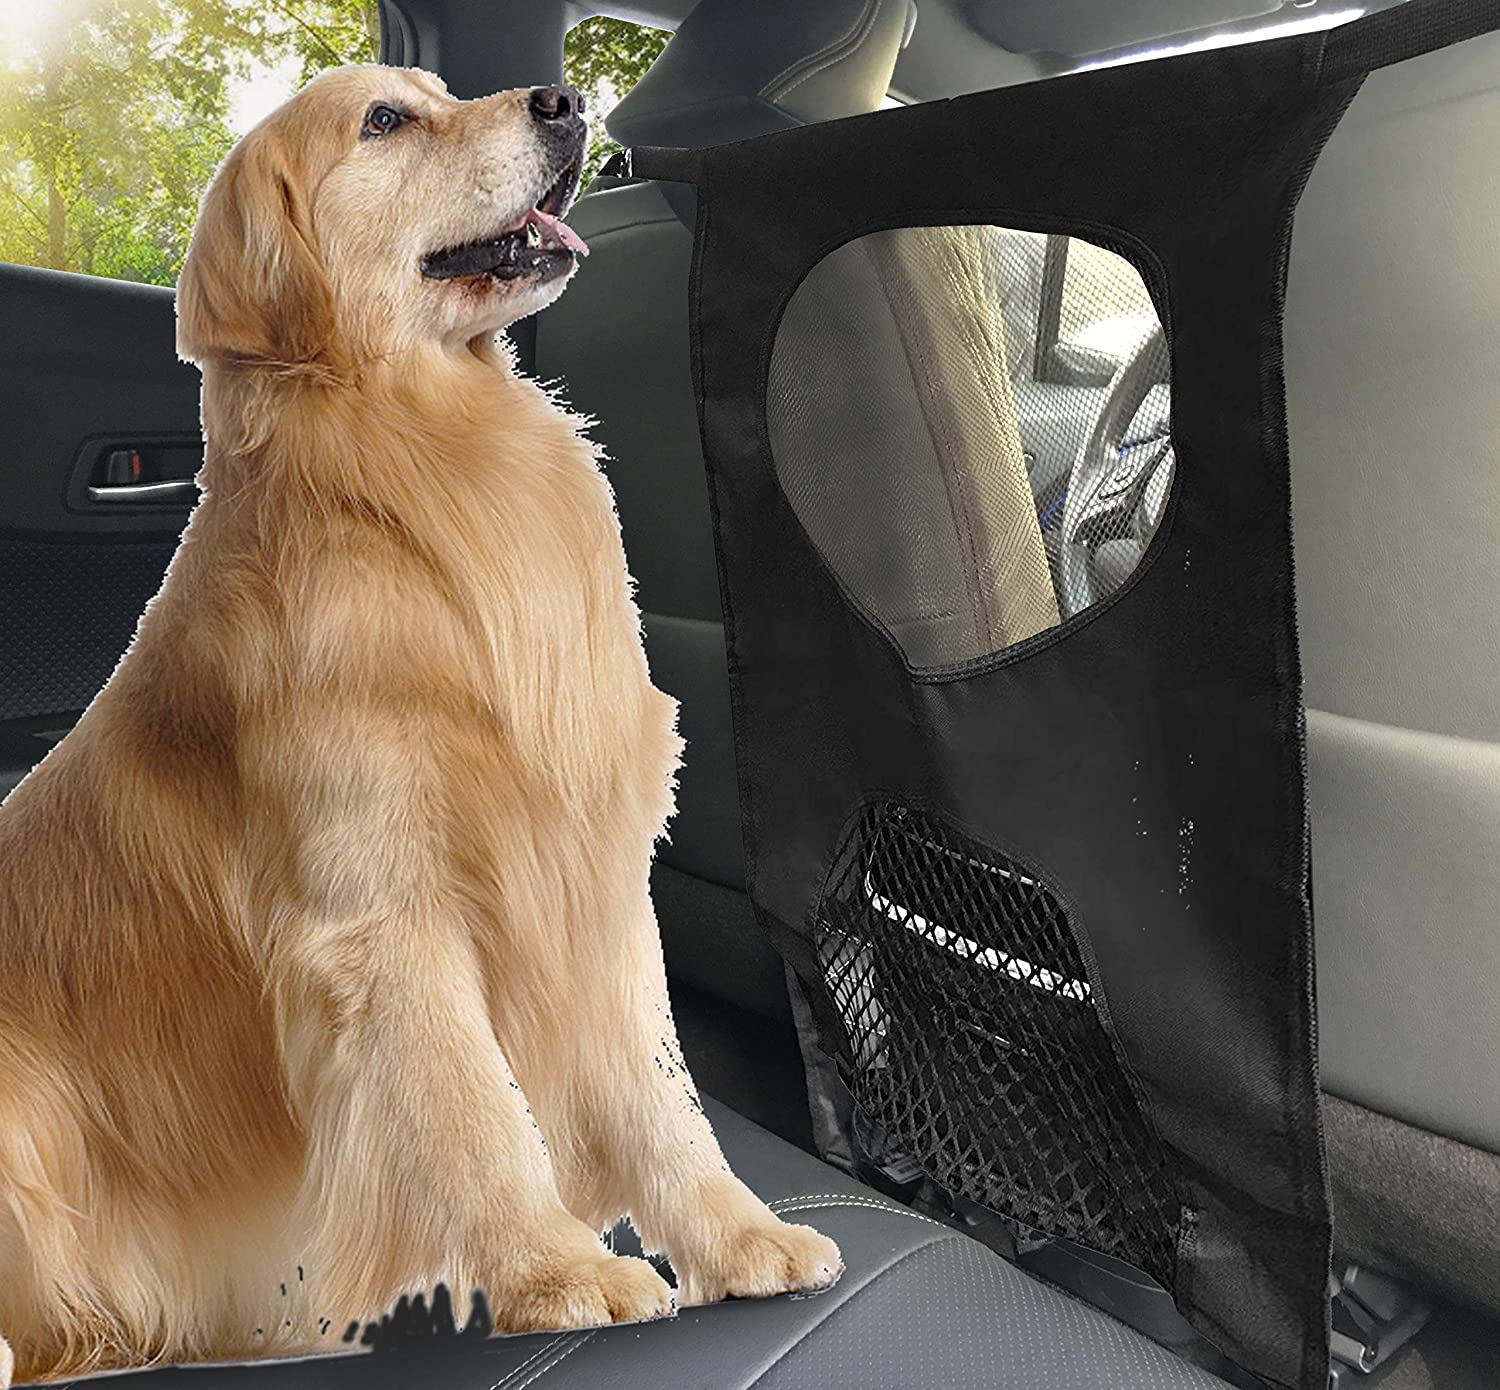 Pet Net Barrier Lifepul(TM) Dogs Backseat Barrier Mesh Obstacle Dog Car Fence Mesh to Keep Your Pets and Drivers Safety inTravel One Size Fit Most & Easy to Install for CarSUVTruck